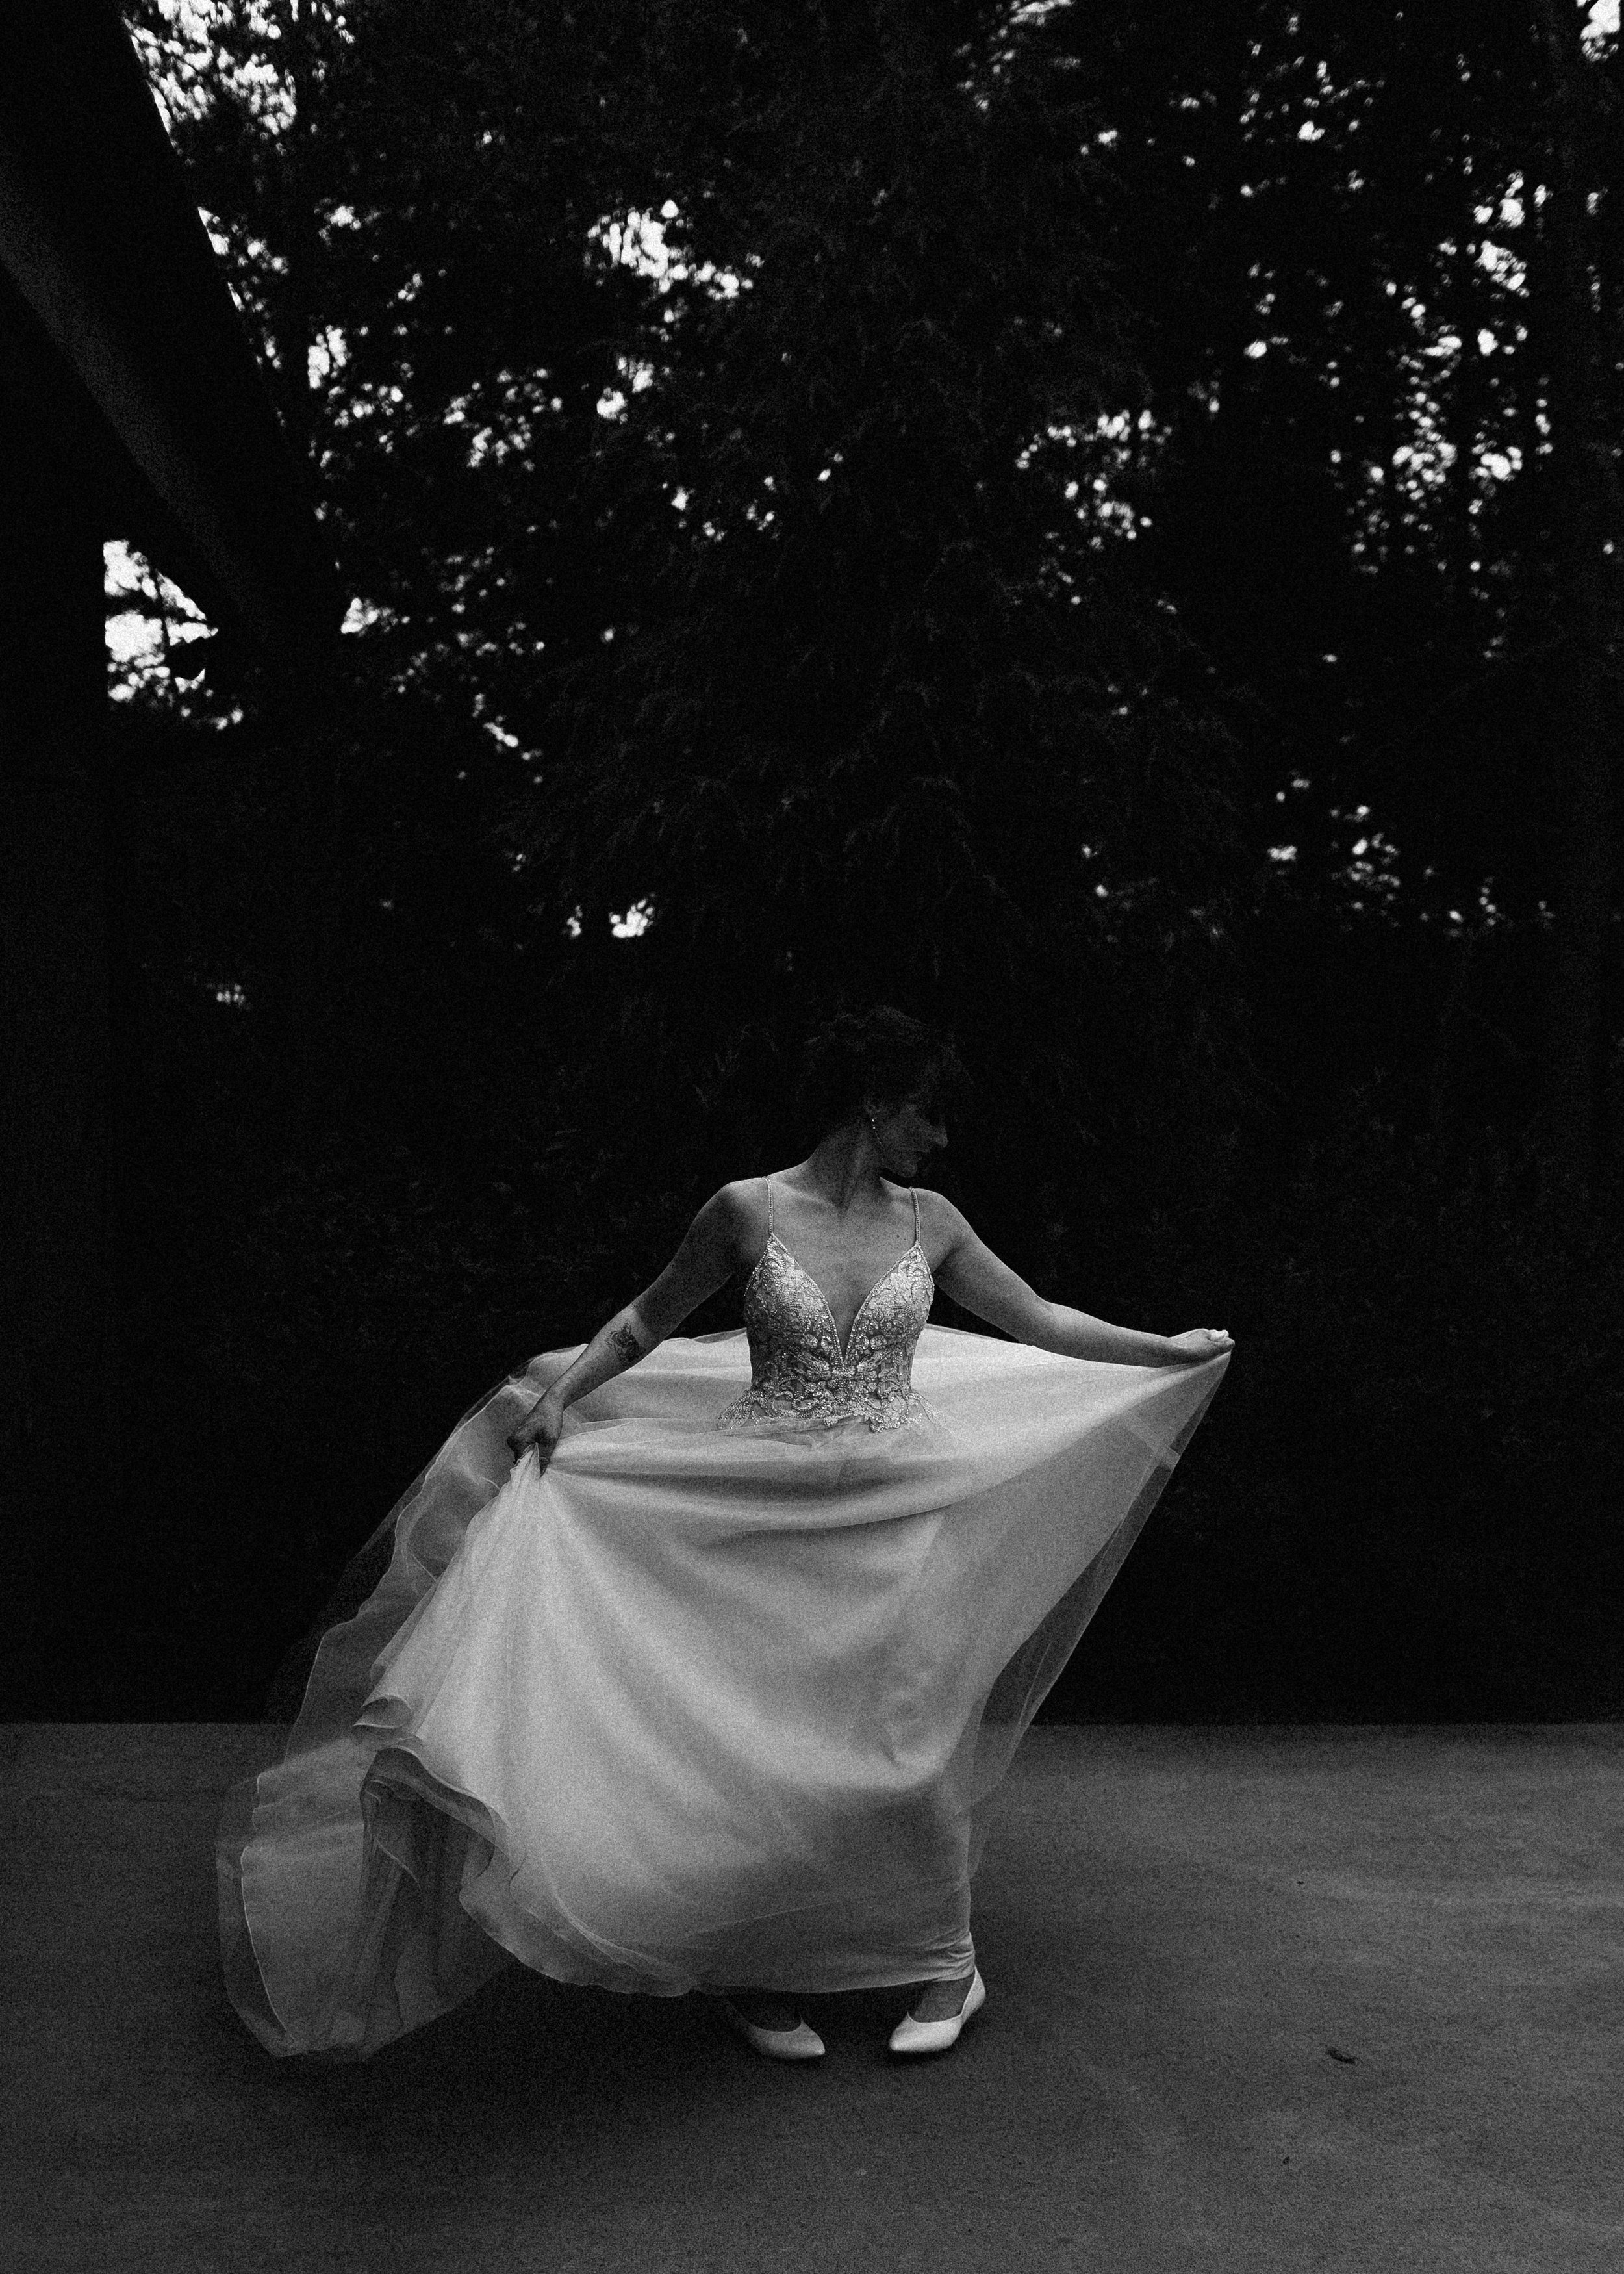 dahlonega_juliette_chapel_photojournalism_atlanta_wedding_photographers_1307.jpg